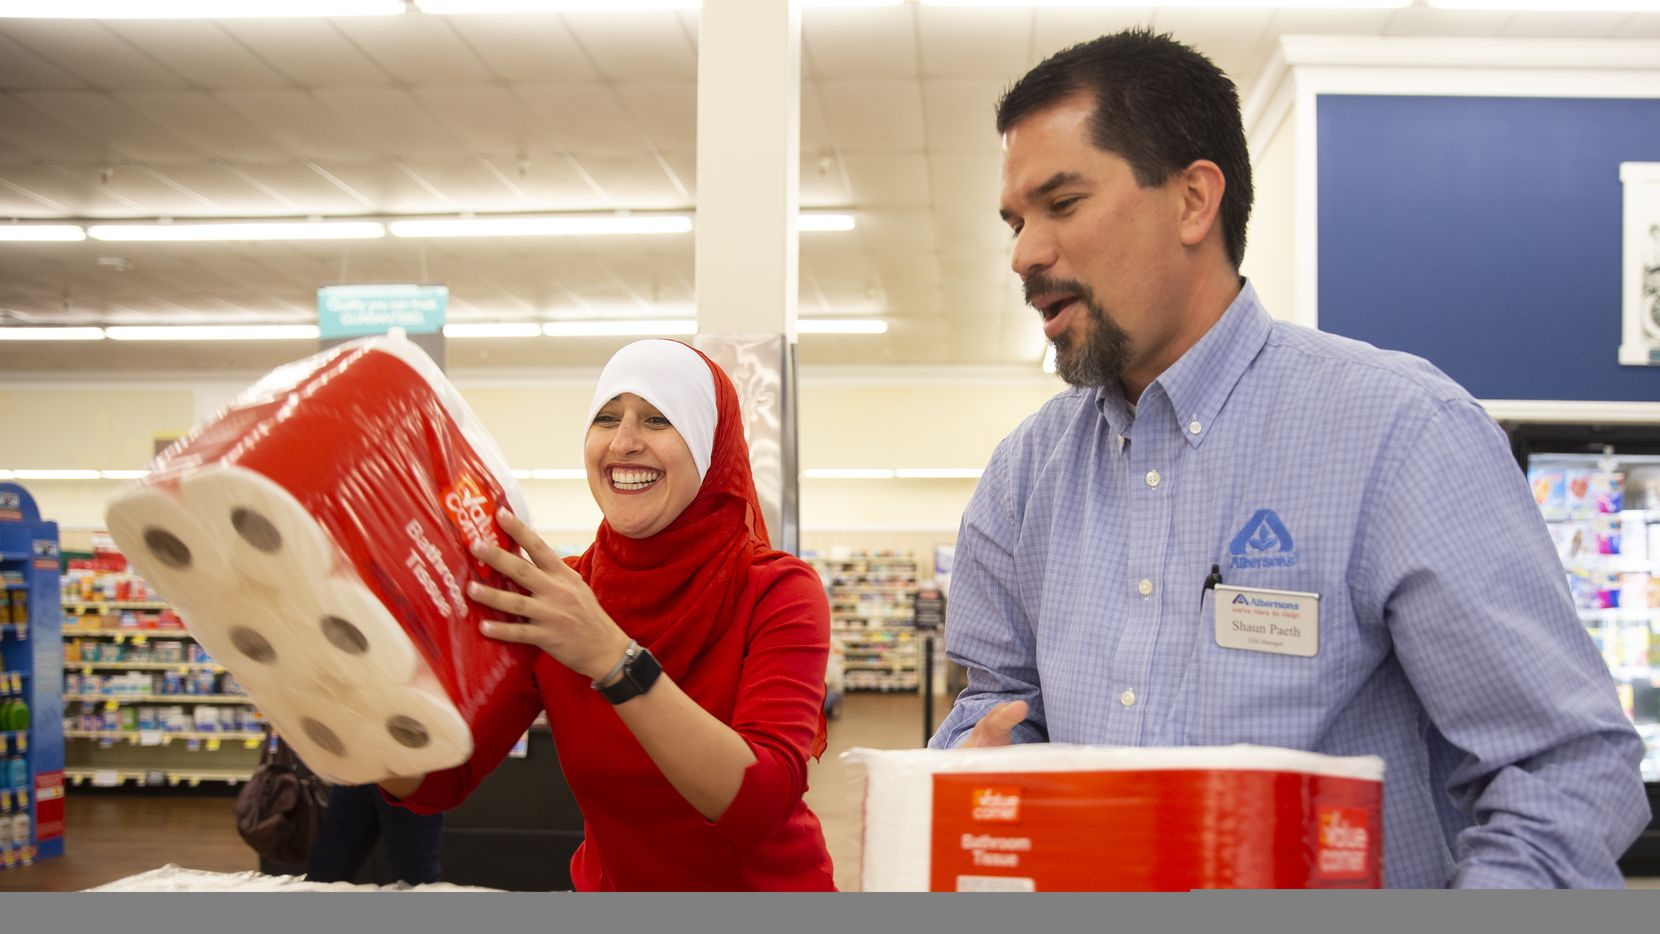 Maha Eldabaja, Center Store Operations Specialist, (left) and Shaun Paeth, head of general merchandise, refill the toilet paper spillover display at Albertsons last week in Colleyville.